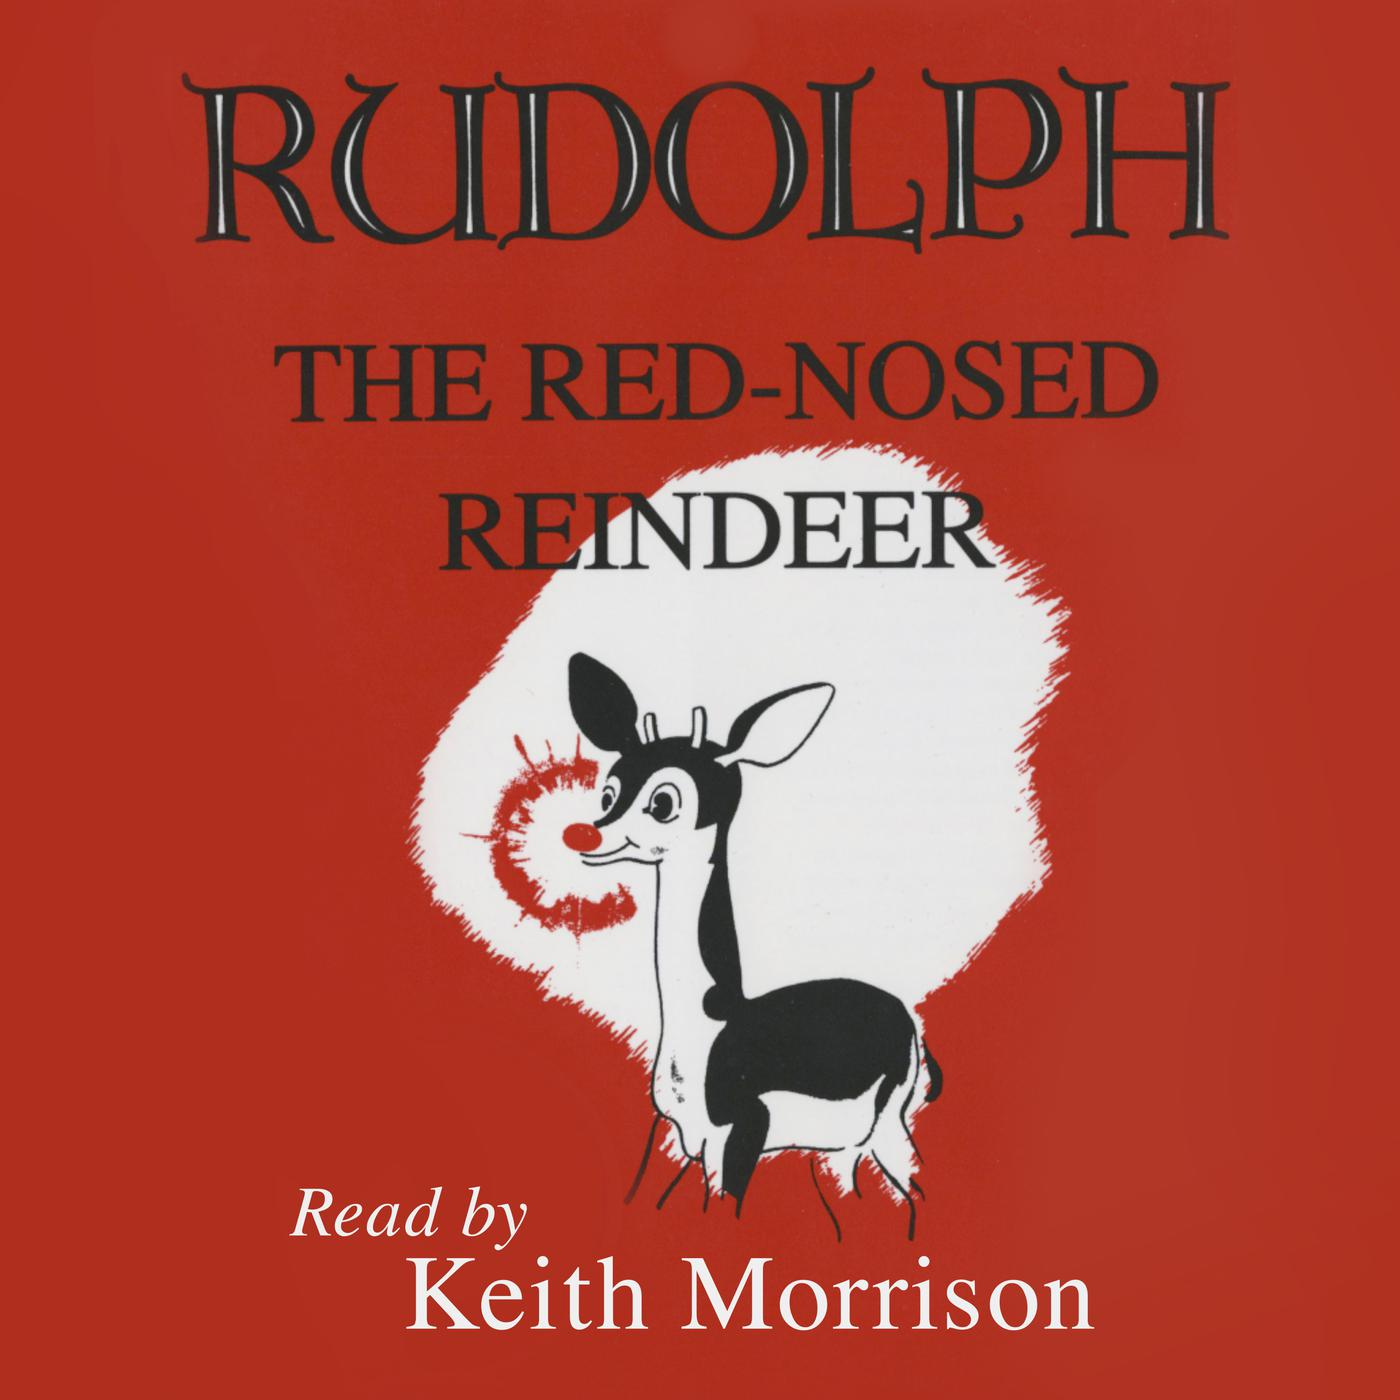 Rudolph the red nosed reindeer is the worst christmas song ever